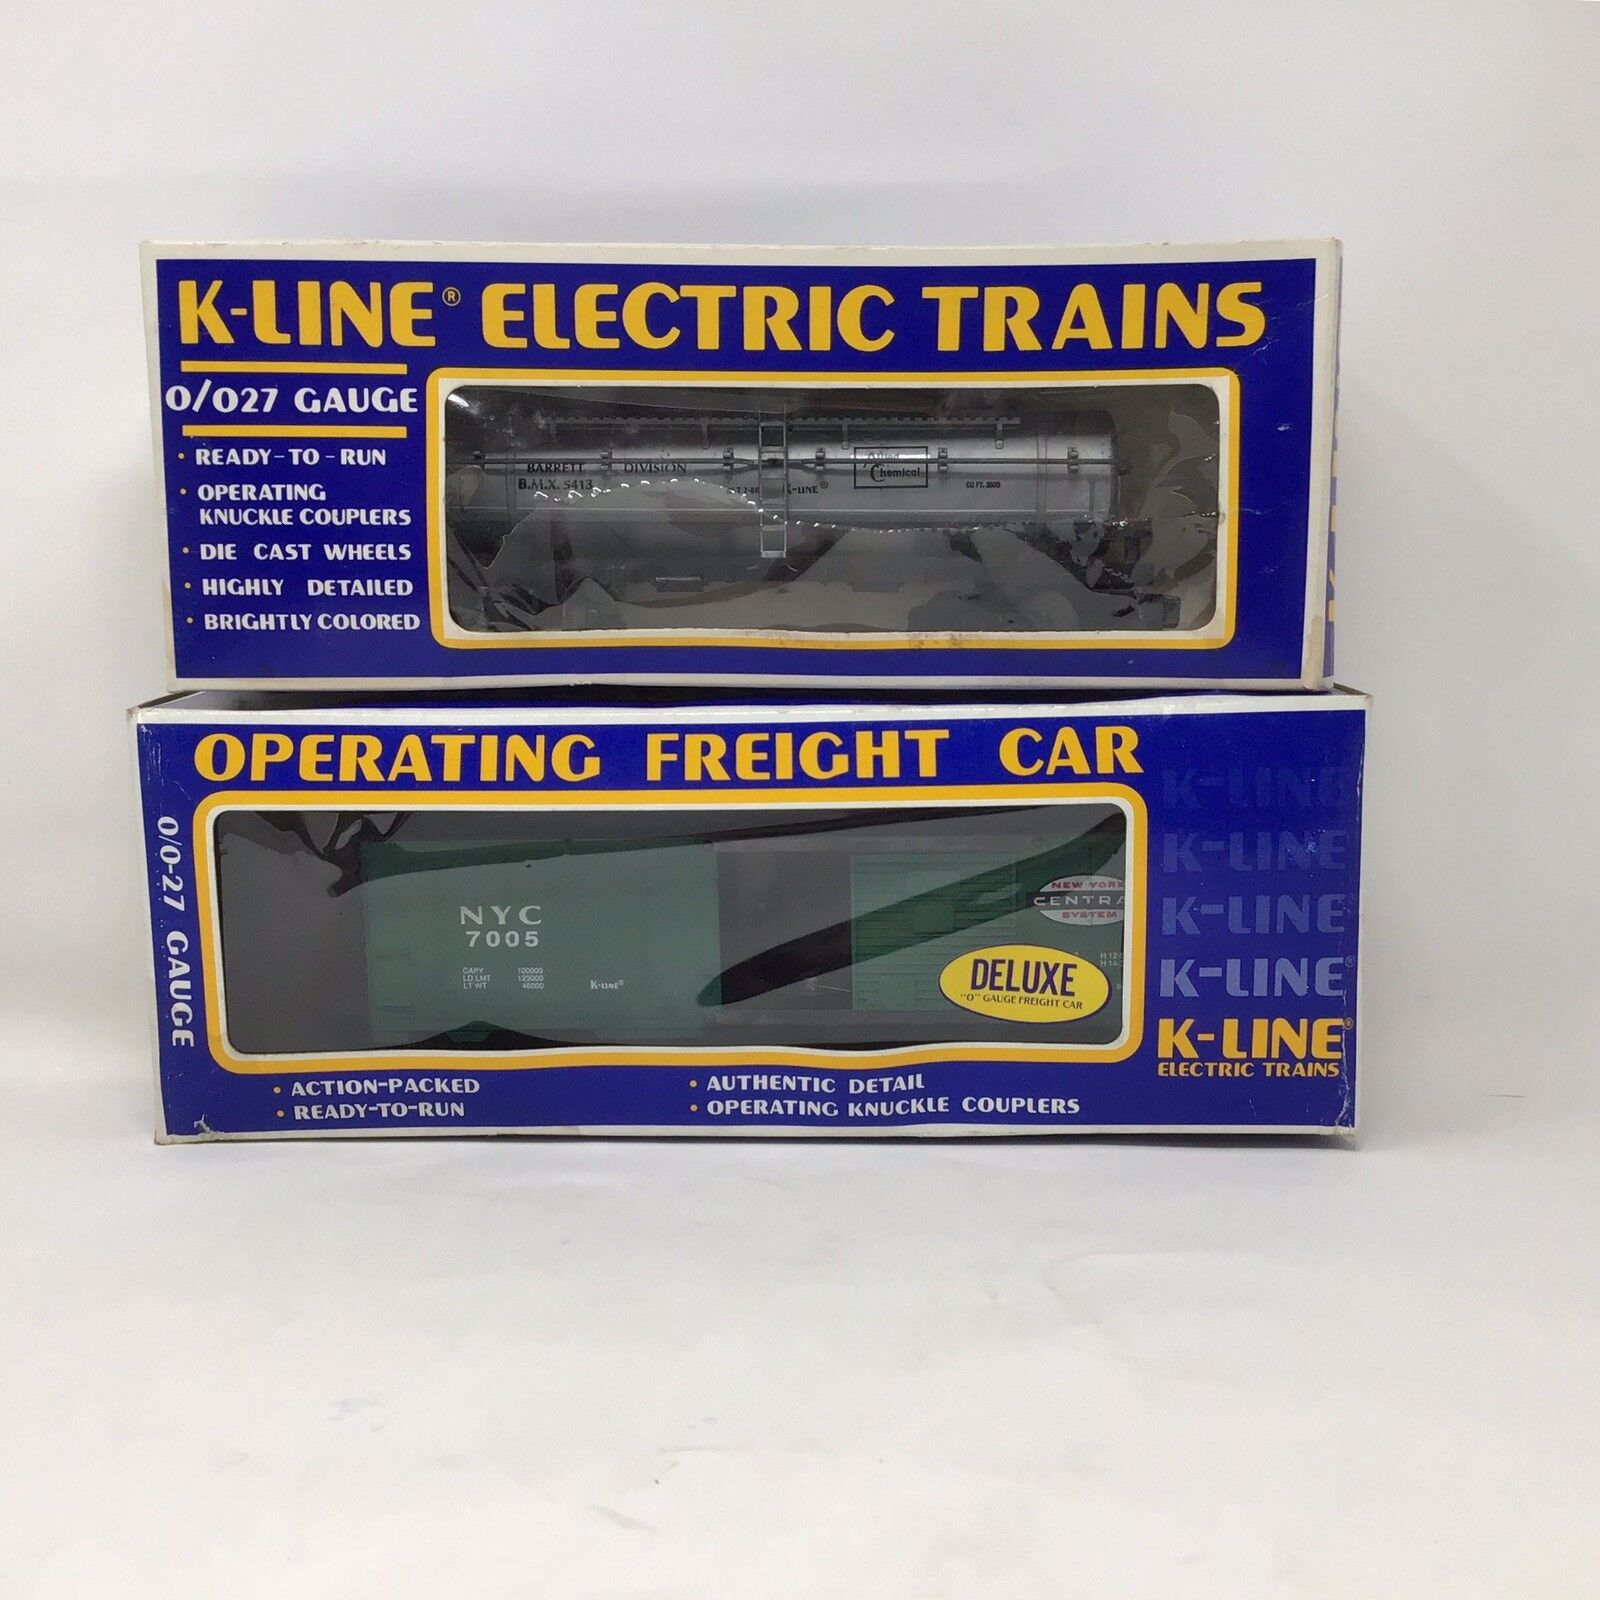 2 K-line electric trains NYC K-7005 Allied Chemical K-5413 Operating Freight Car